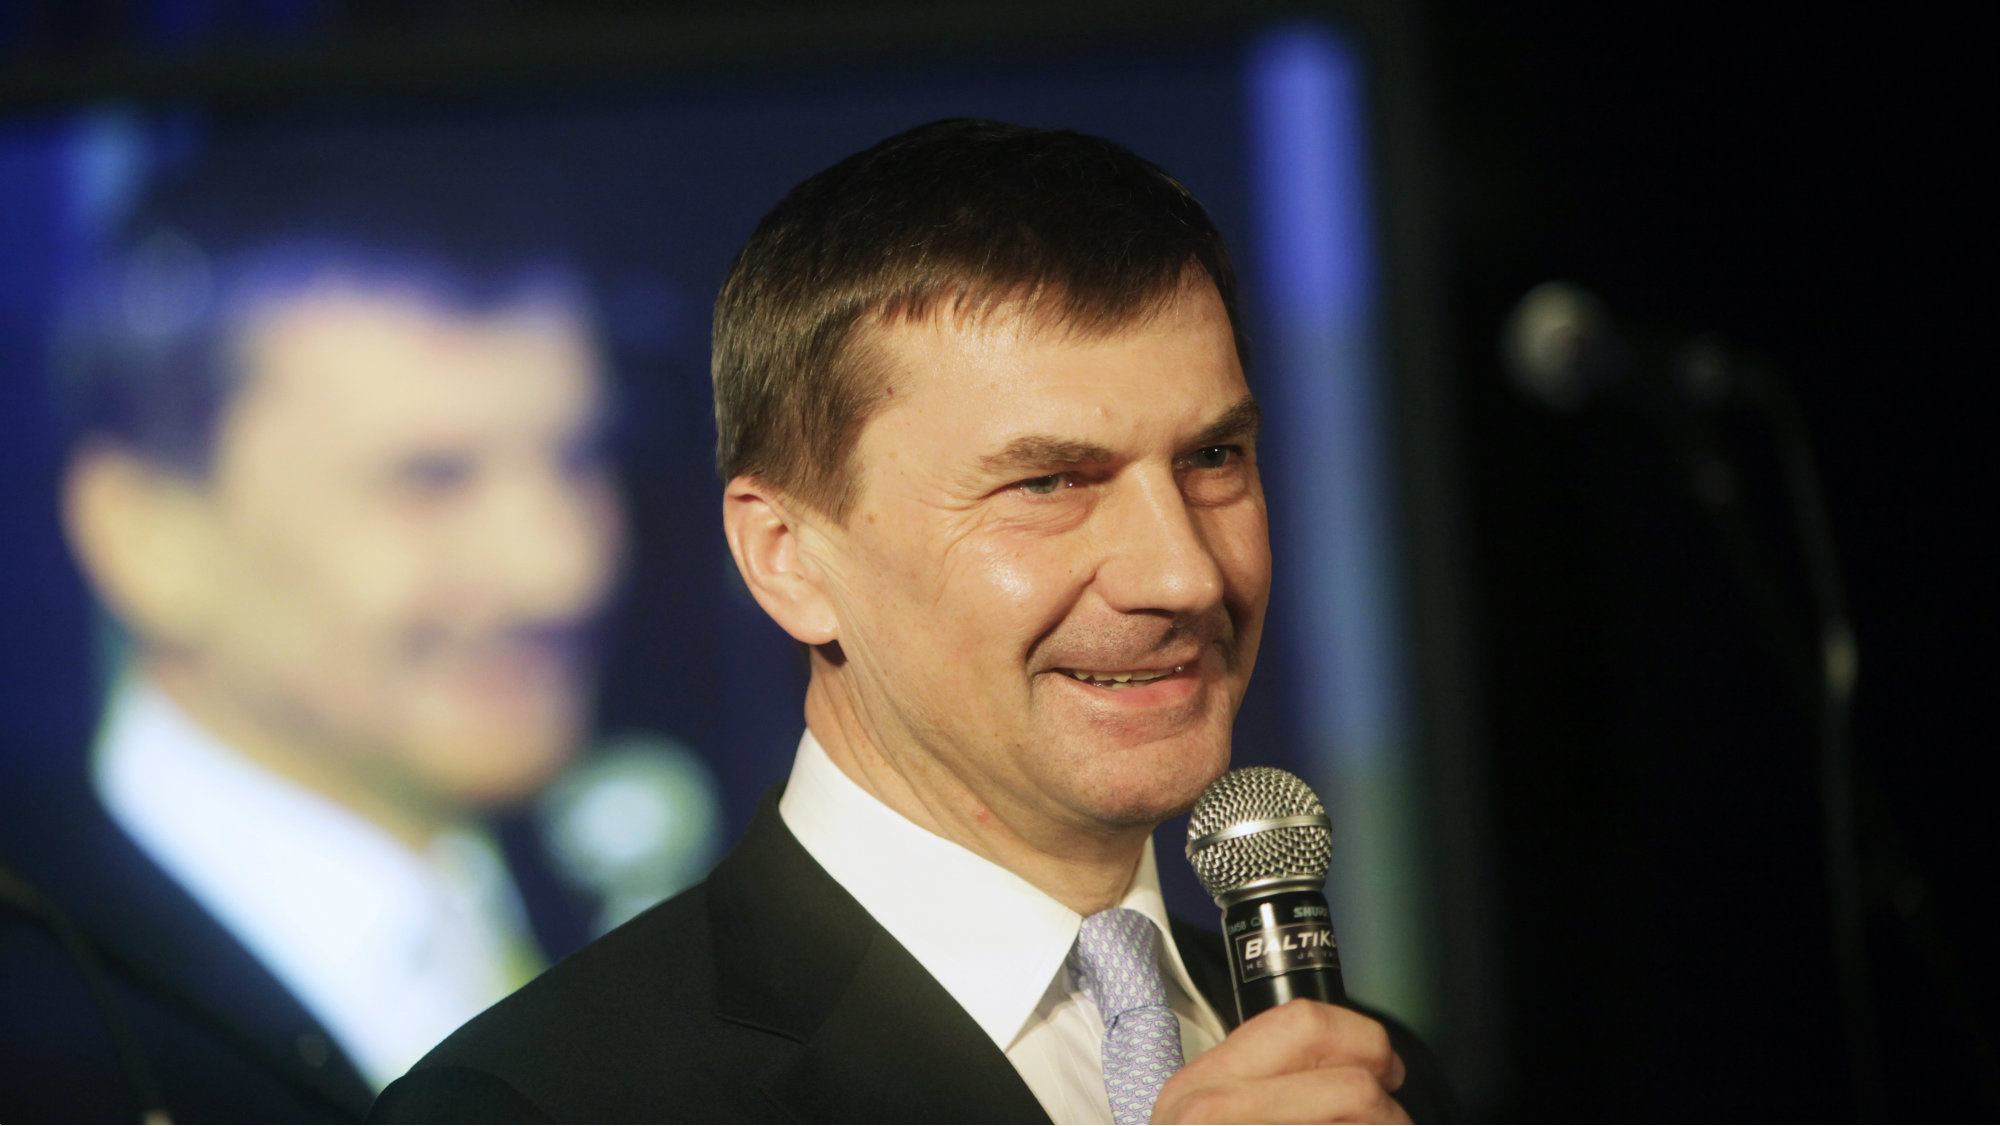 Estonia's acting Prime Minister and Reform Party chairman Andrus Ansip speaks to his party activists as they wait for general election results in Tallinn March 6, 2011. Estonia's center-right government was headed for victory in Sunday's election, early results showed, with the coalition getting credit for a successful adoption of the euro and ending a deep recession. REUTERS/Ints Kalnins (ESTONIA - Tags: POLITICS ELECTIONS)